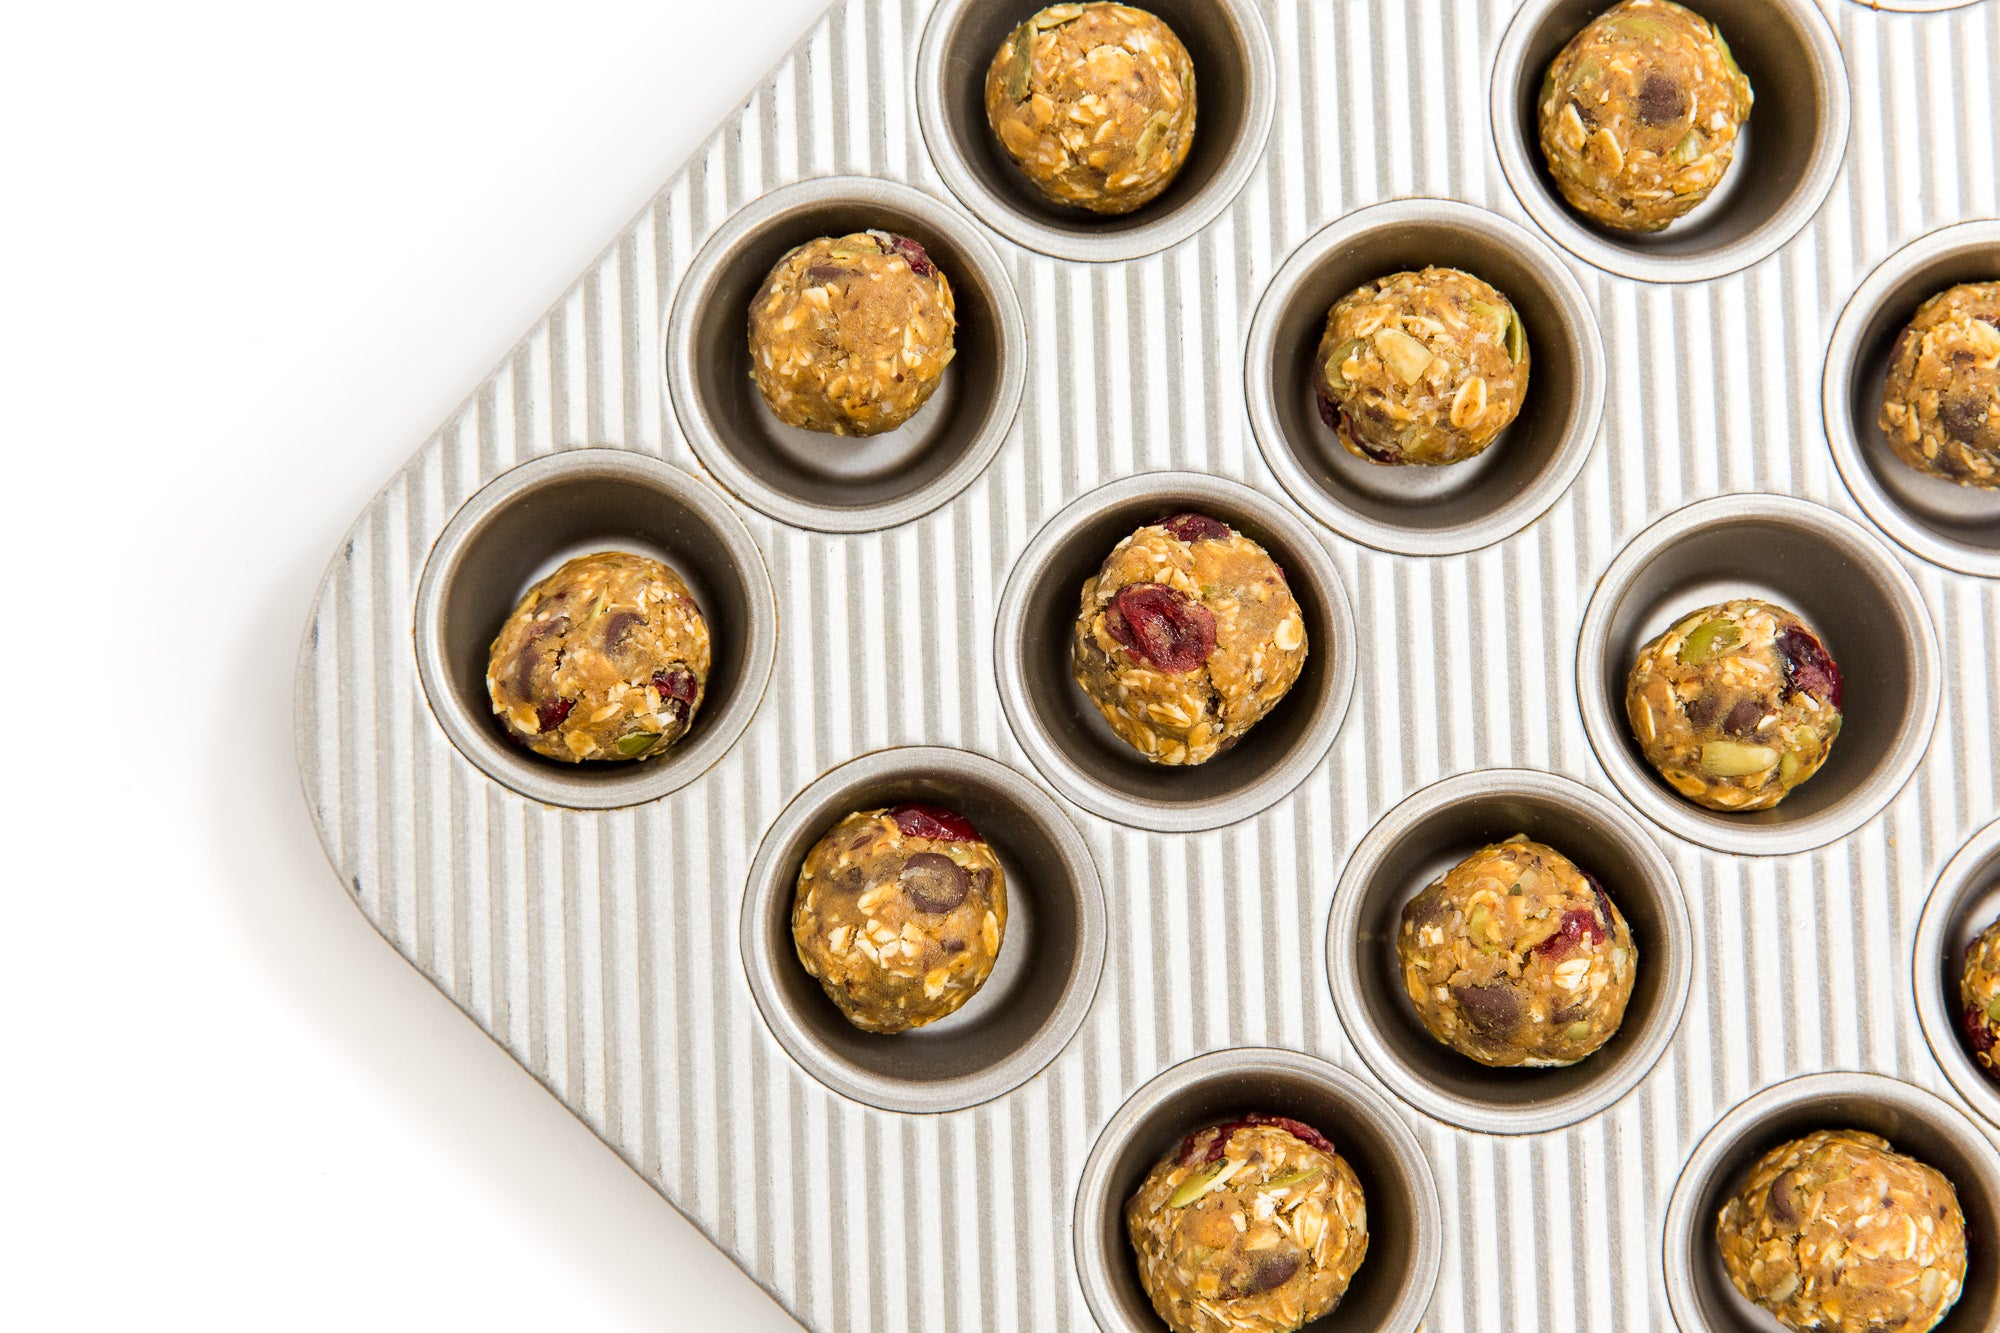 Image of part of a mini cupcake tray with balls of Miss Jones Baking Co Happy Trails Mix Cookie Bites dough